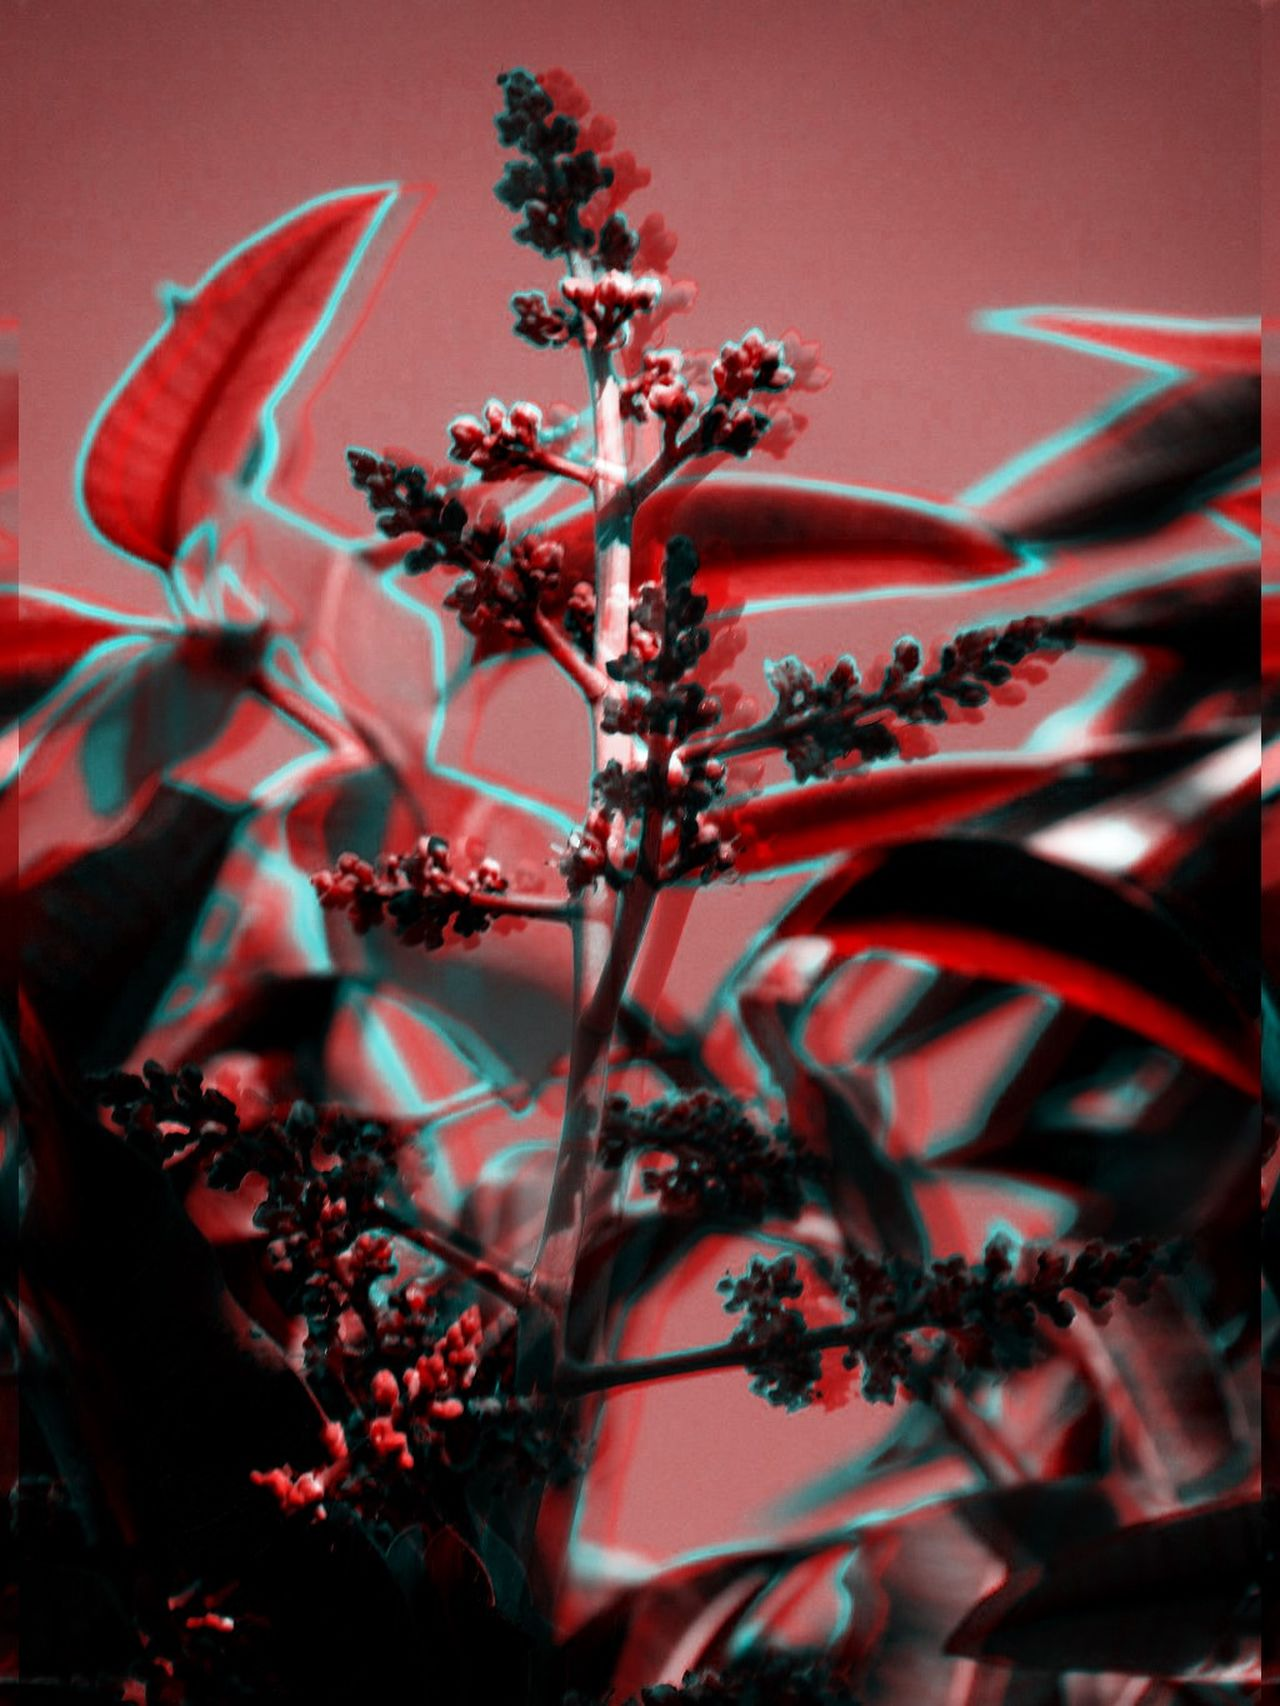 Life goes on!! (Collection) 3D Art 3d Collection 3D Composition 3D Effect 3D Photo 3Dart Black Black & White Black And White Blakck And White Blue Leaves Mango Flowers Mango Tree No People Outdoors Outdoos Red White